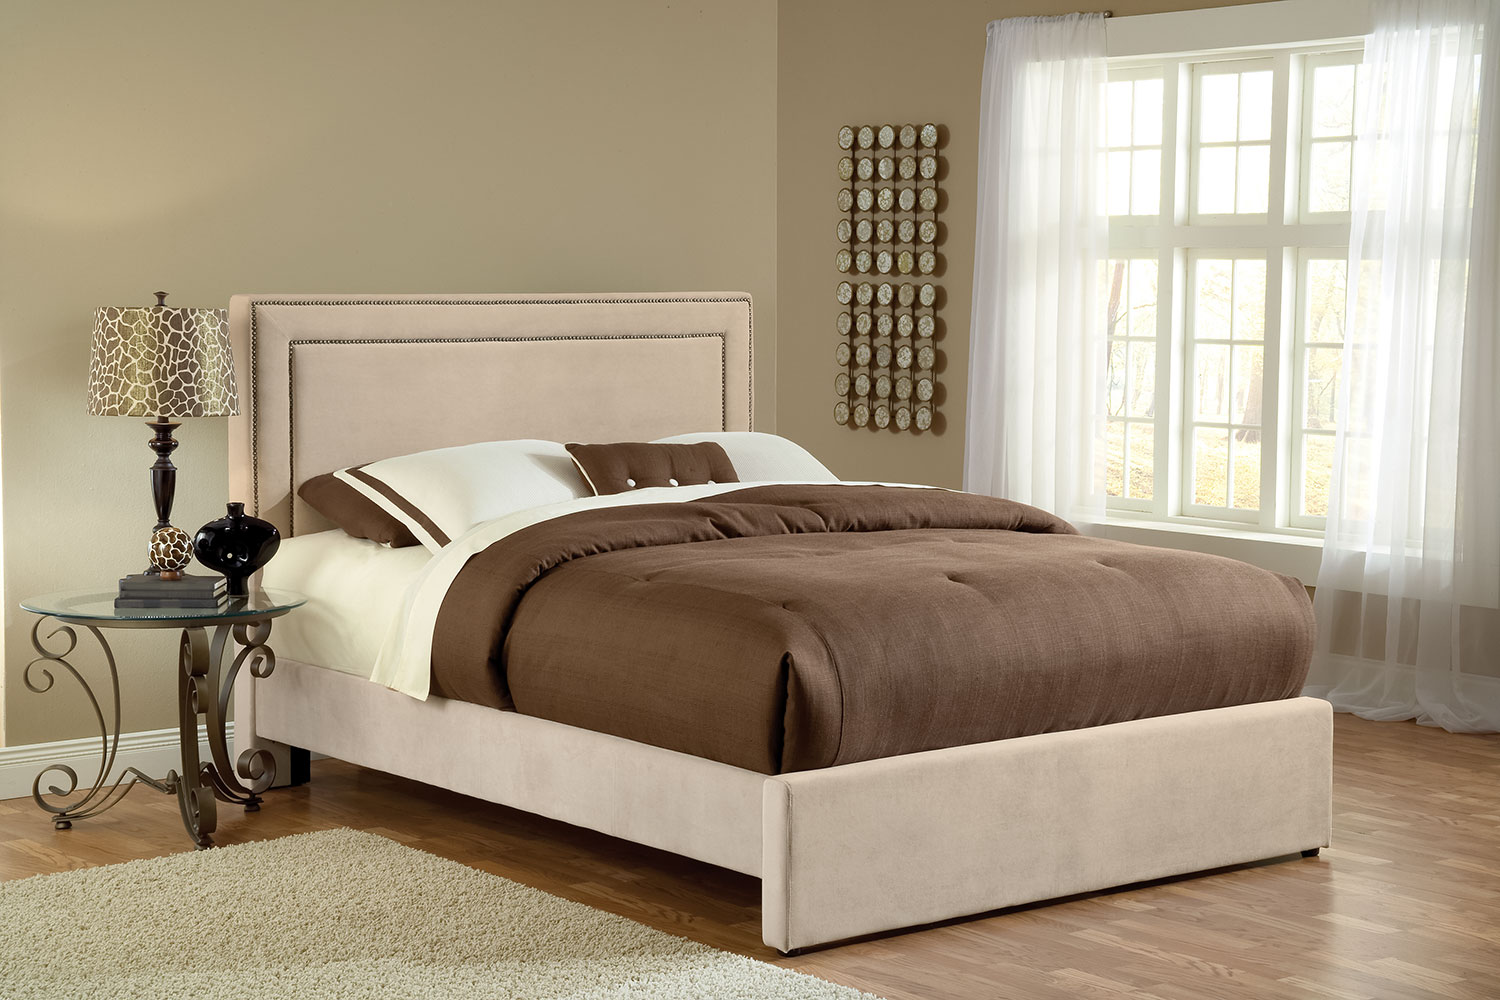 Bedroom Furniture - Amber Queen Bed - Beige